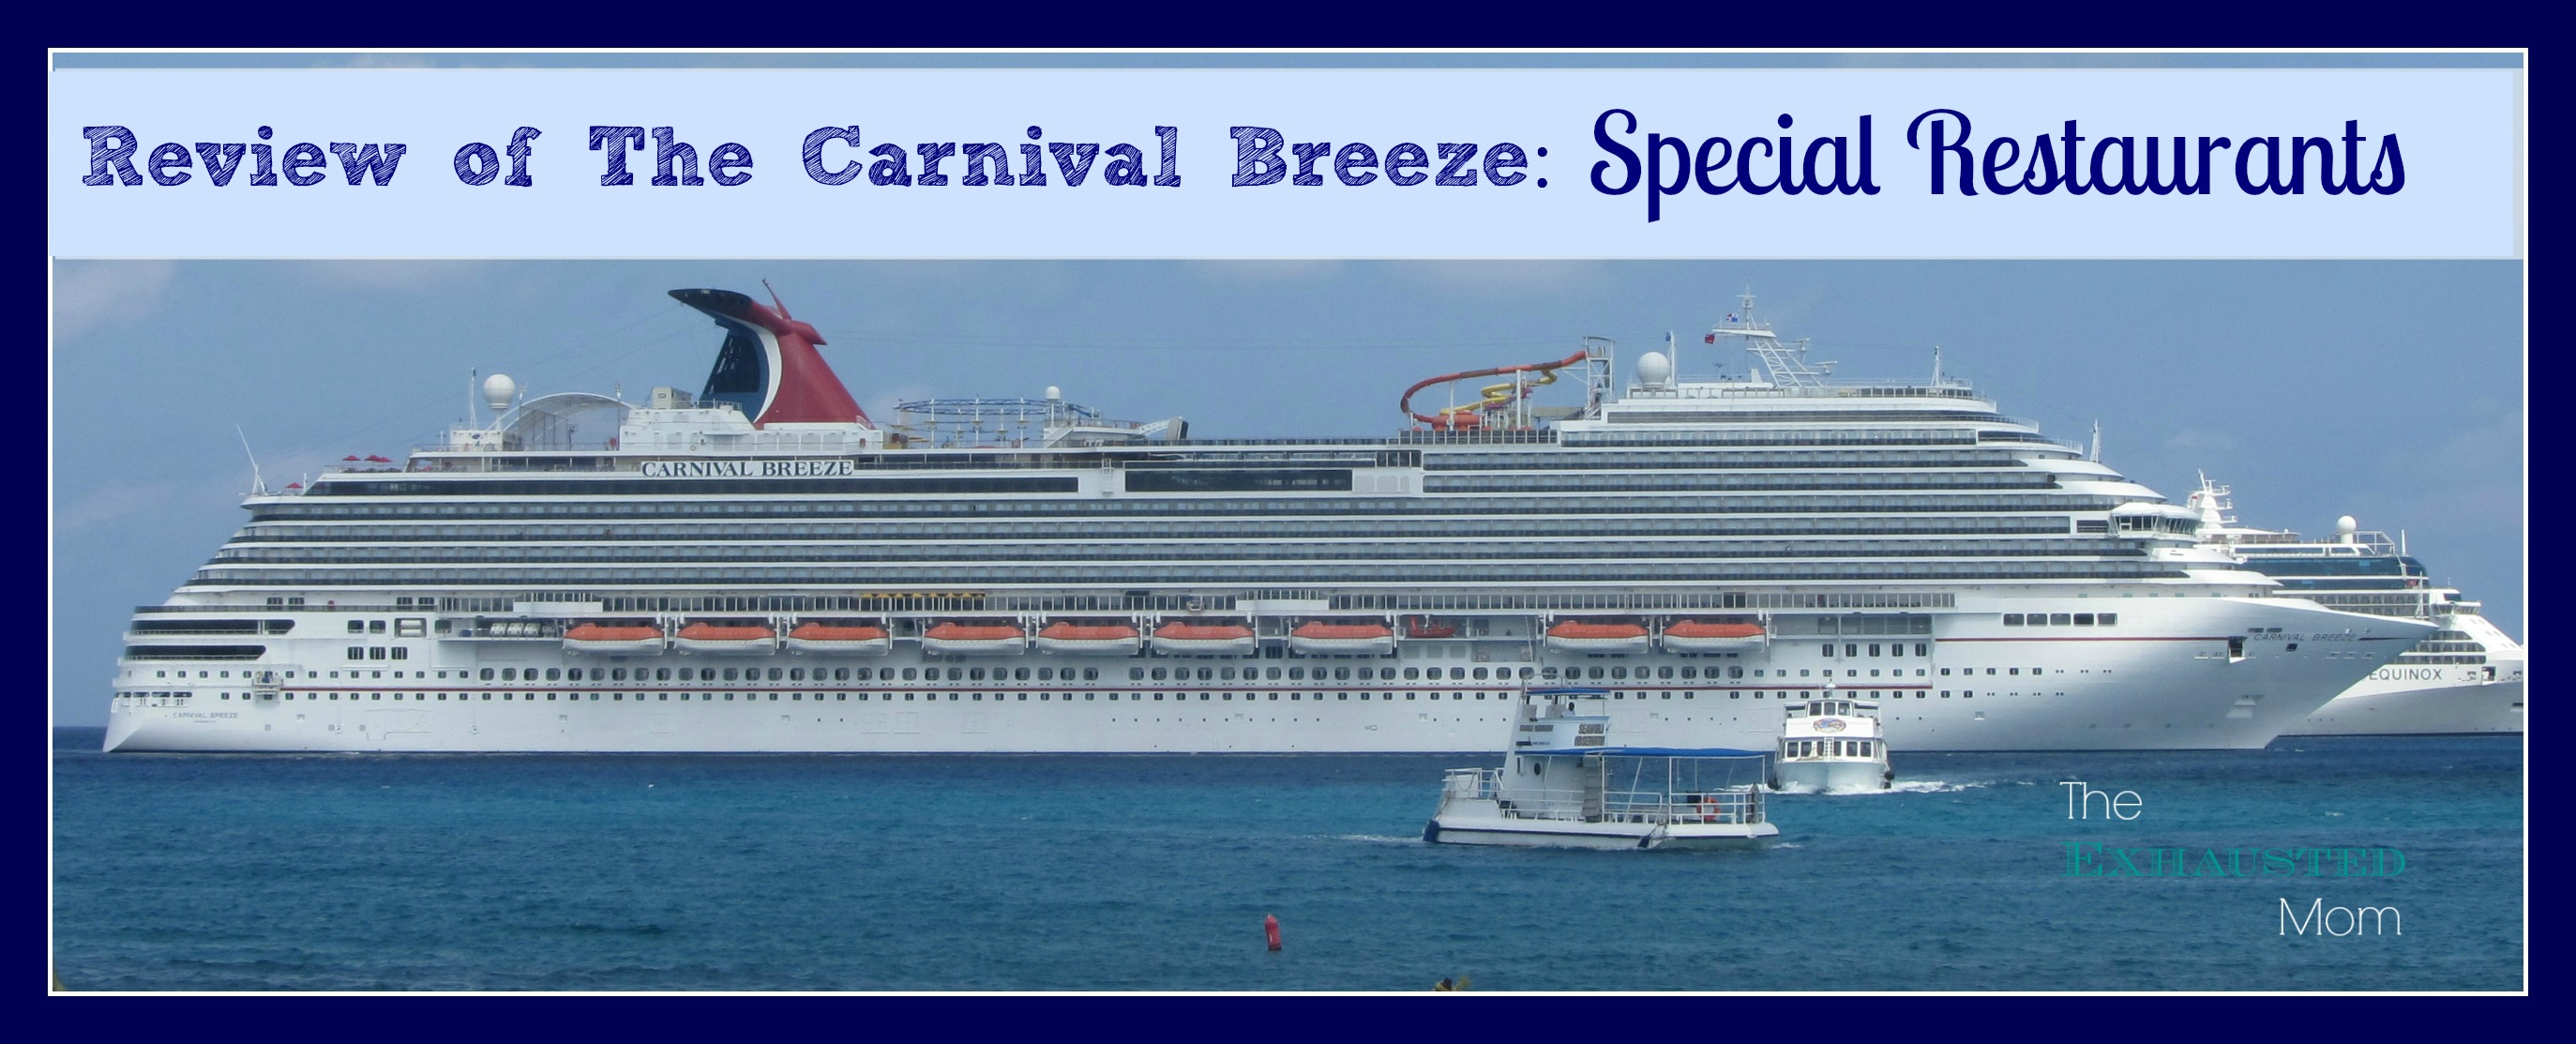 The Special Restaurants Aboard Carnival Breeze